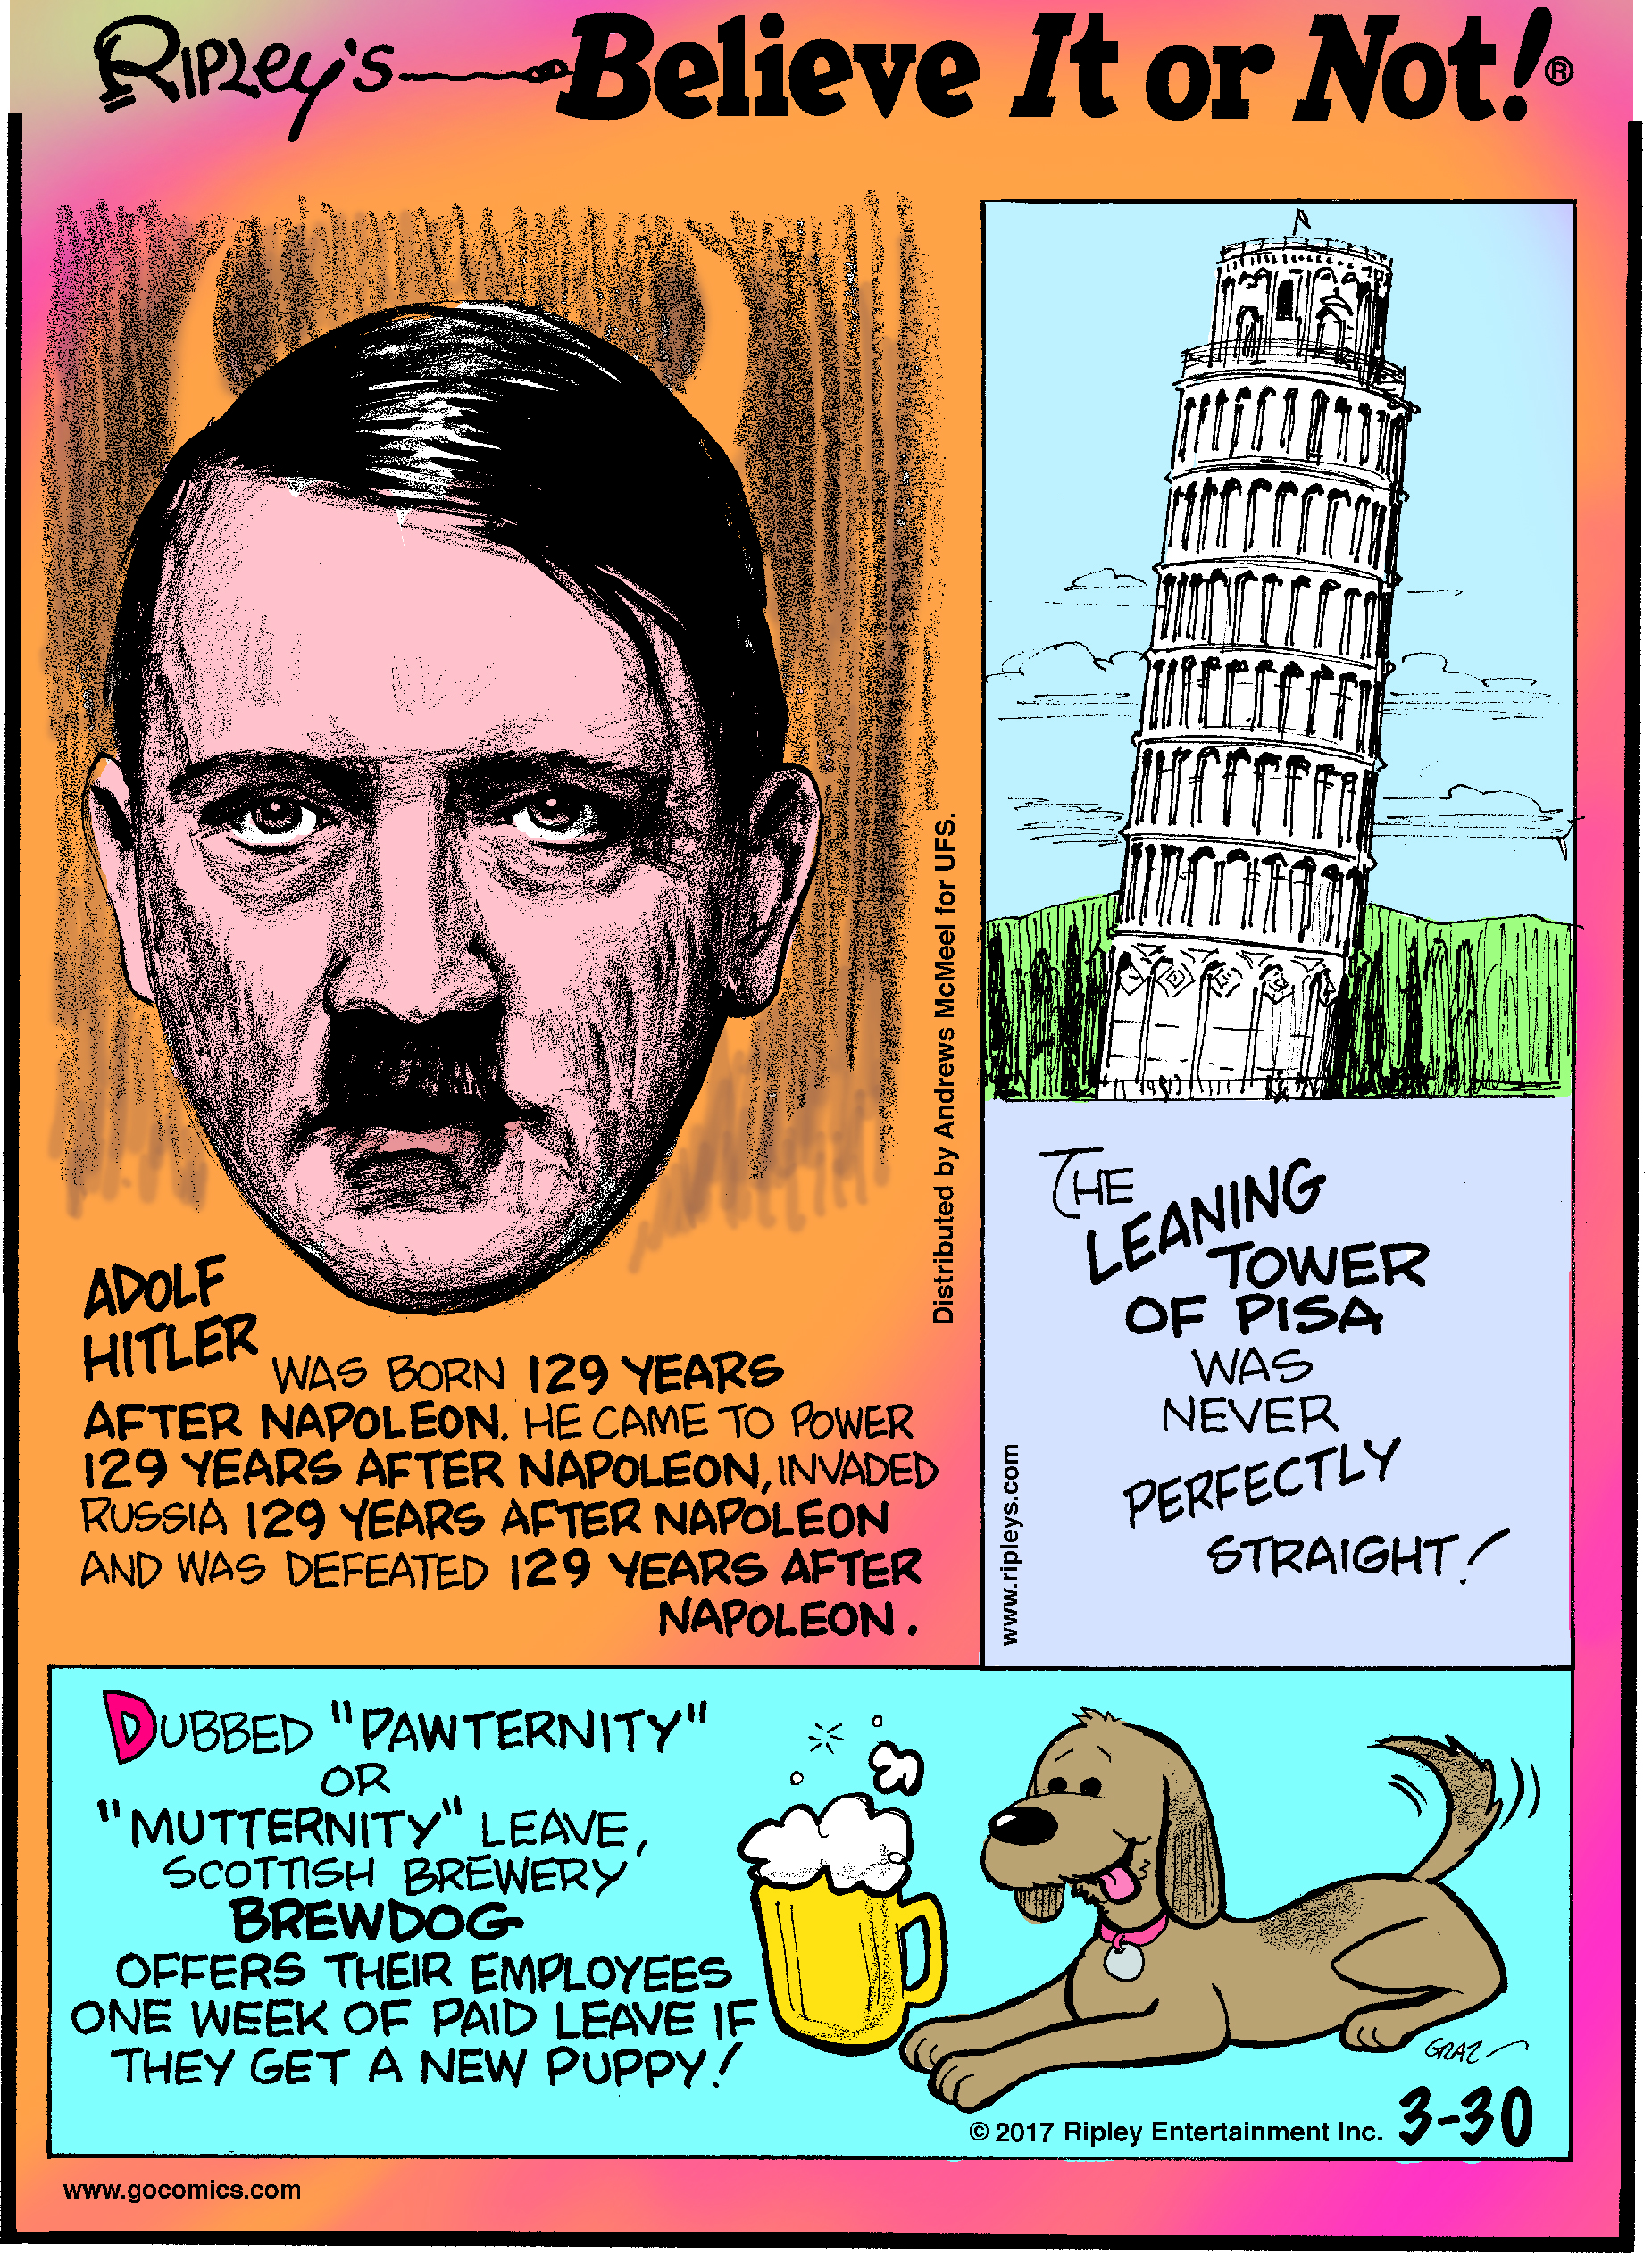 "Adolf Hitler was born 129 years after Napoleon. He came to power 129 years after Napoleon, invaded Russia 129 years after Napoleon and was defeated 129 years after Napoleon.--------------------The Leaning Tower of Pisa was never perfectly straight!-------------------- Dubbed ""Pawternity"" or ""Mutternity"" leave, Scottish brewery Brewdog offers their employees one week of paid leave if they get a new puppy!"